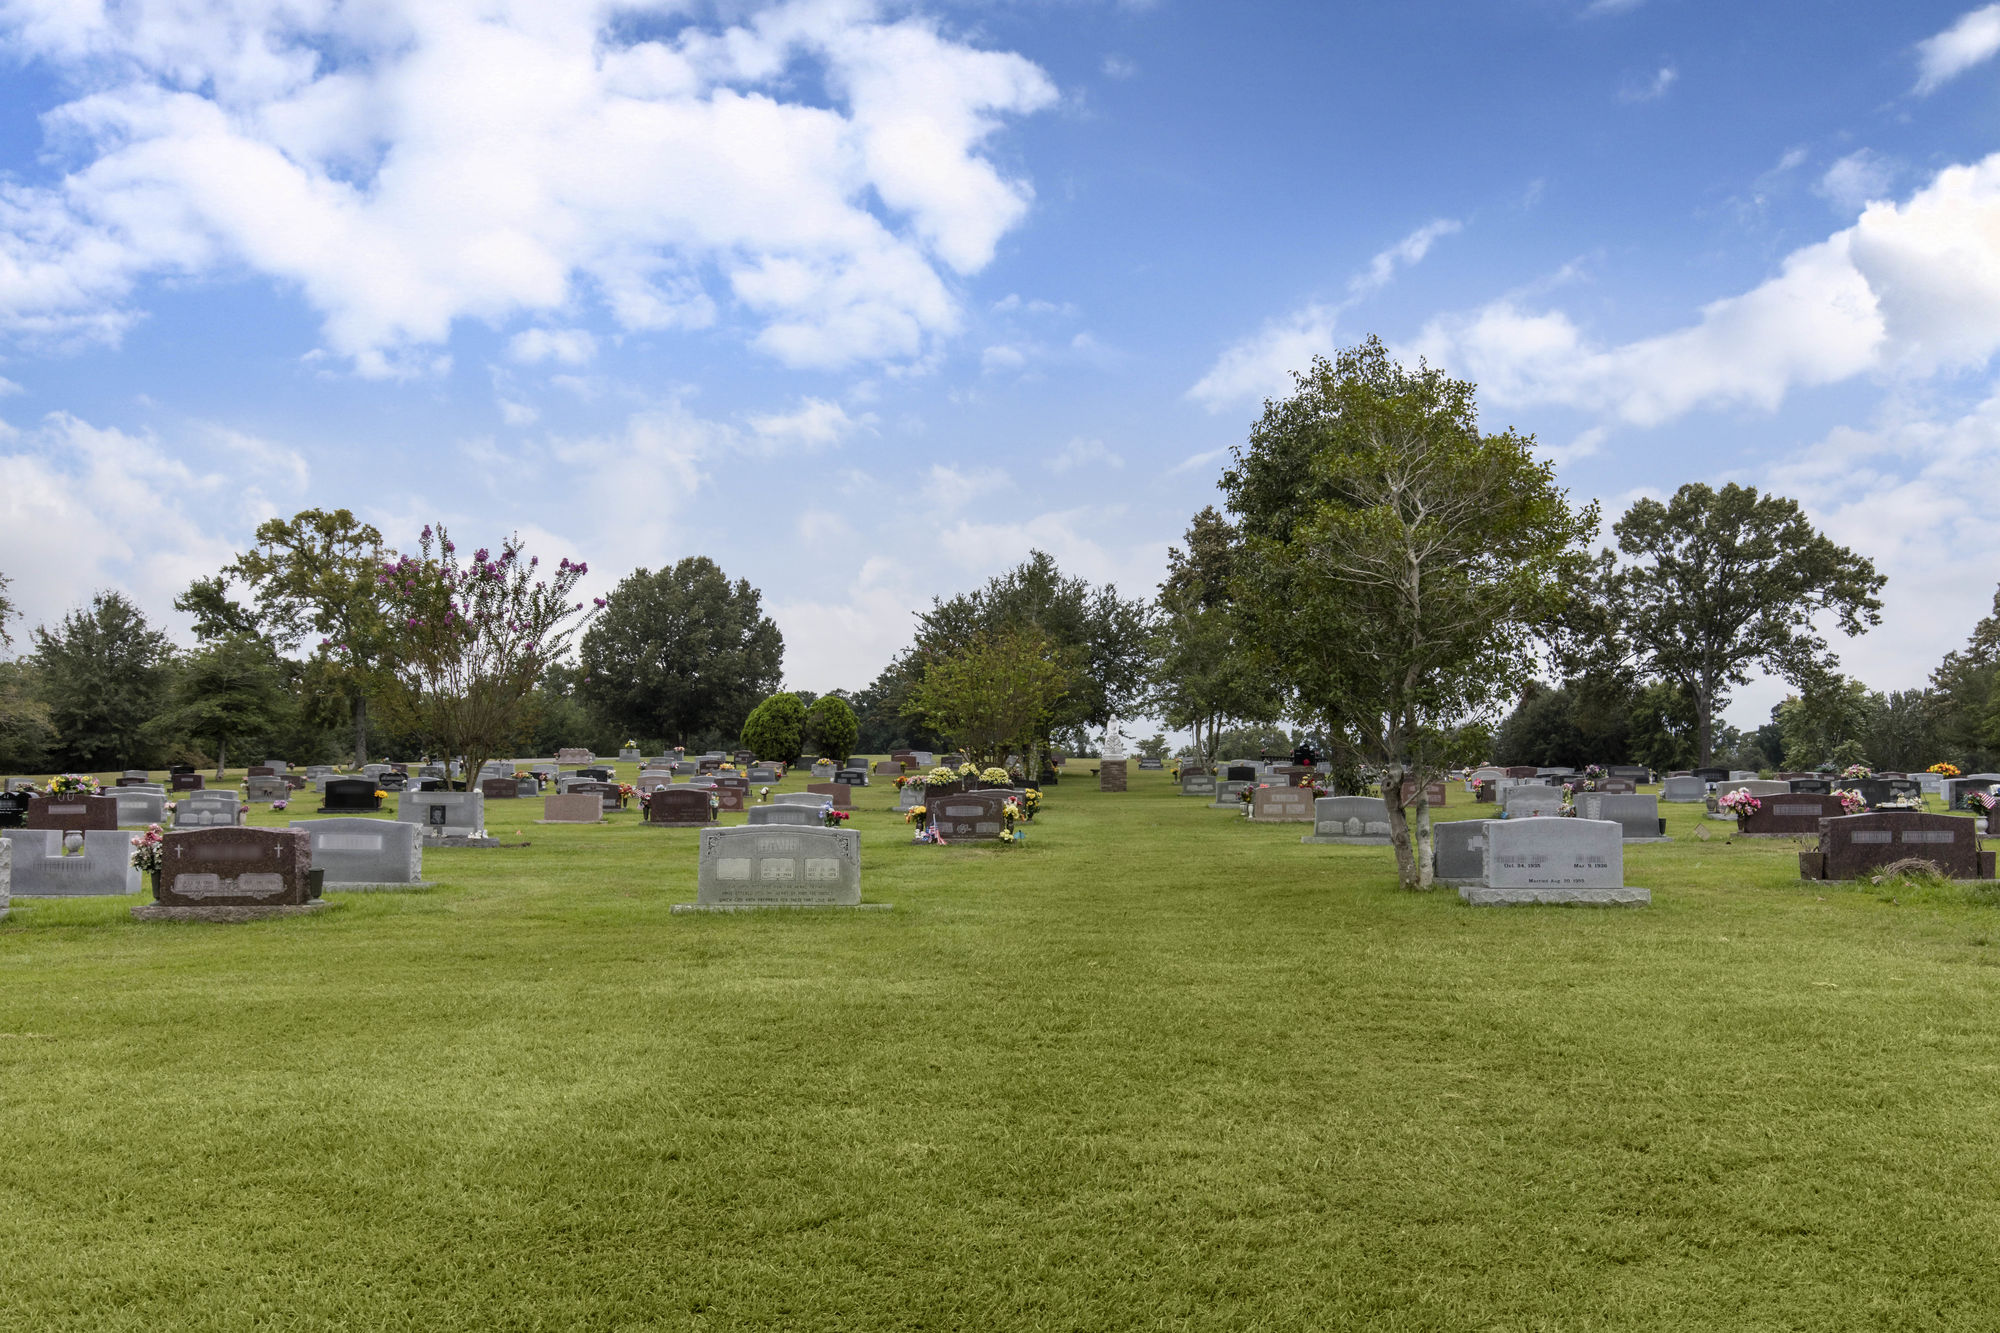 Cemetery grounds at Rest Hills Memorial Park